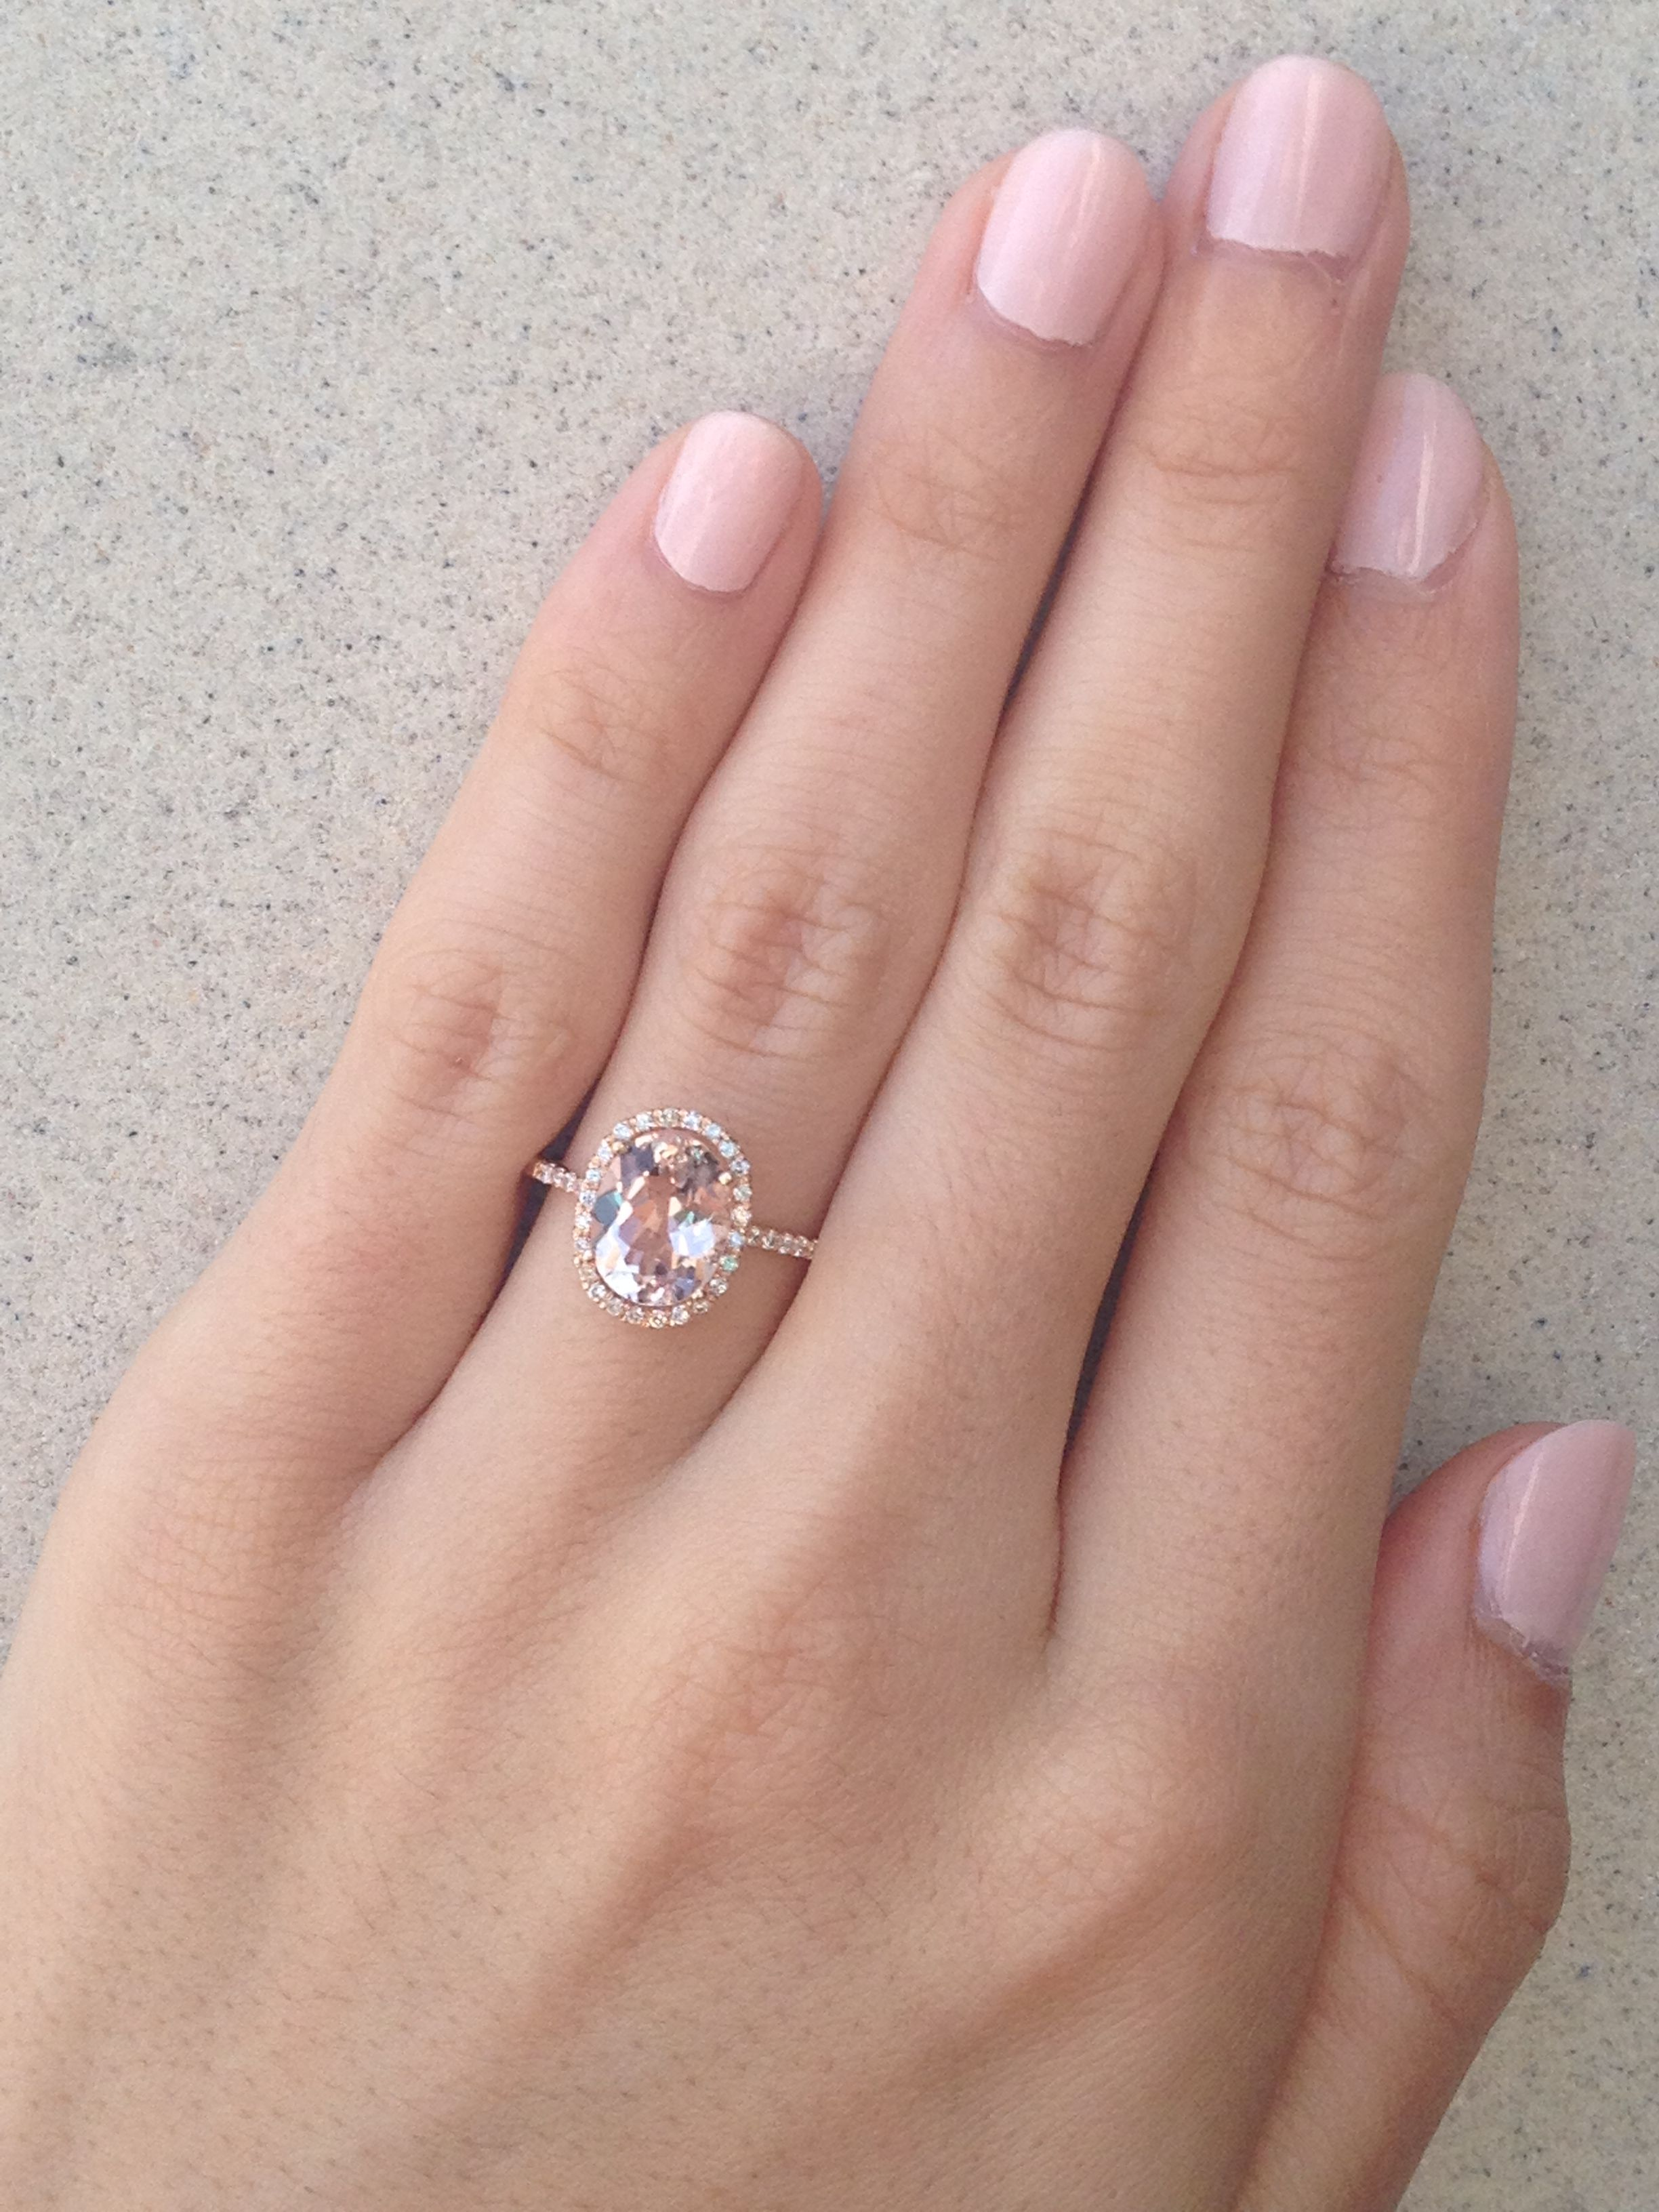 Rose gold morganite oval halo ring rose gold ring oval halo ring